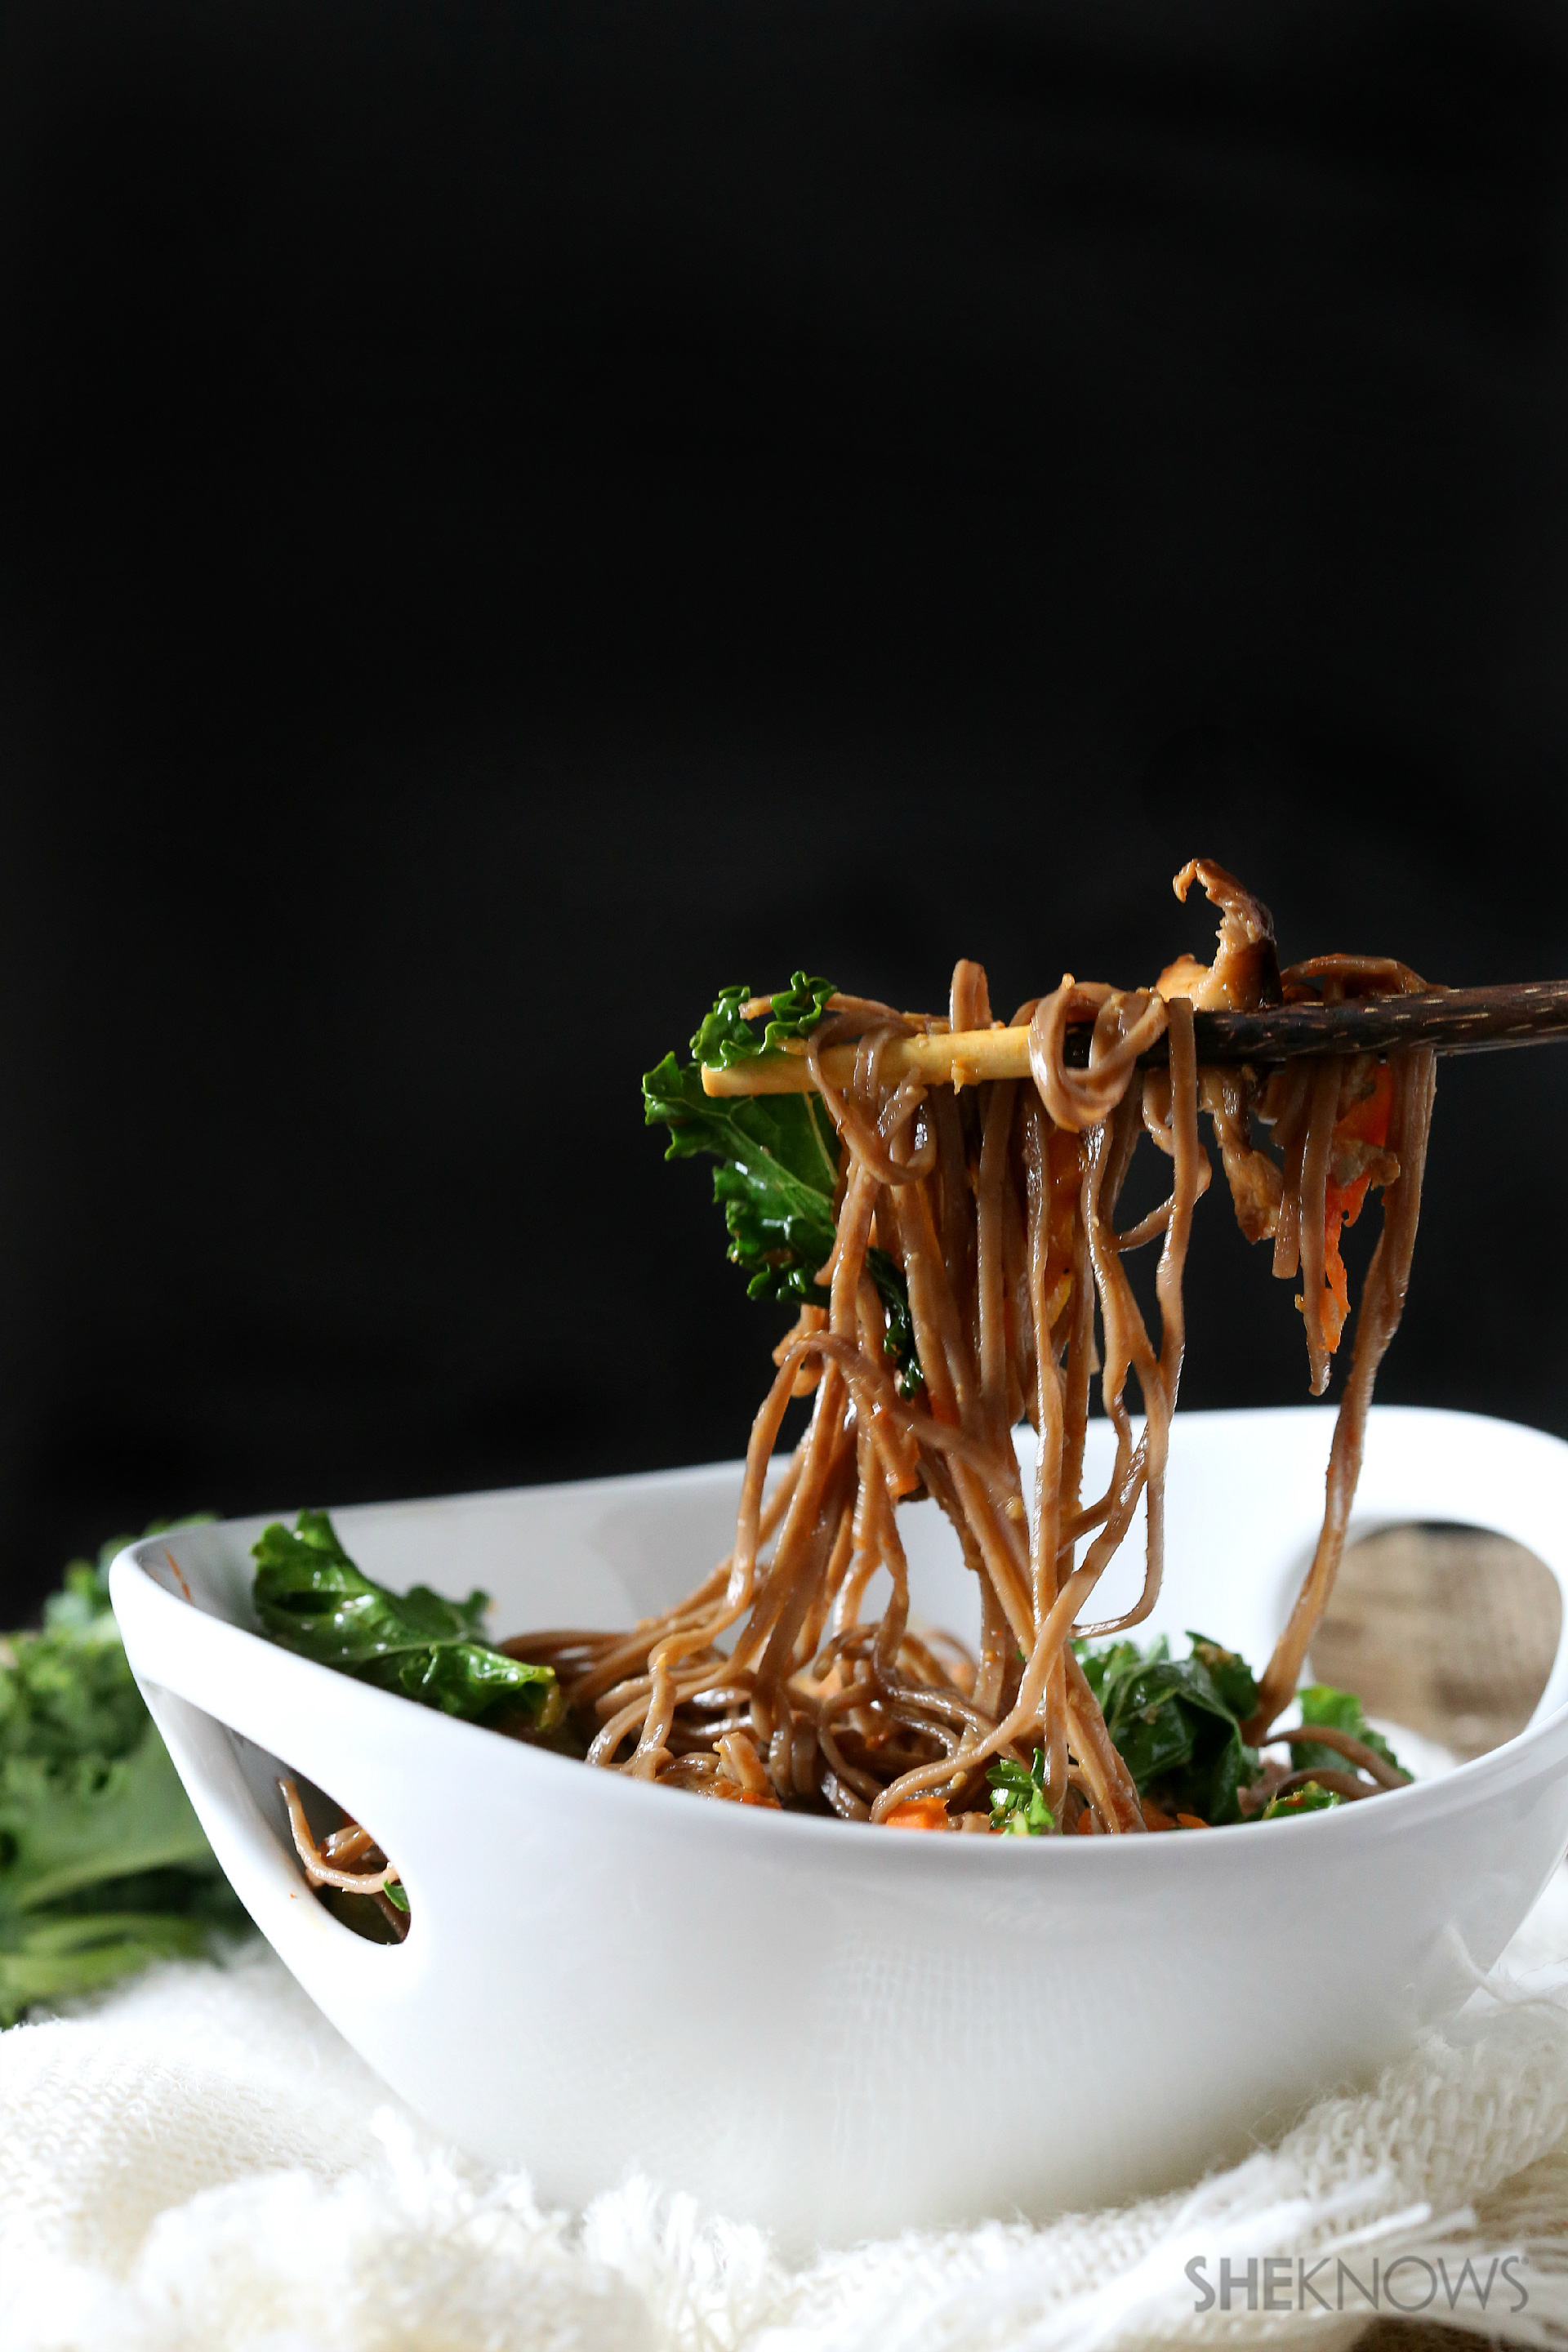 Spicy soba noodles with kale and shiitake mushrooms